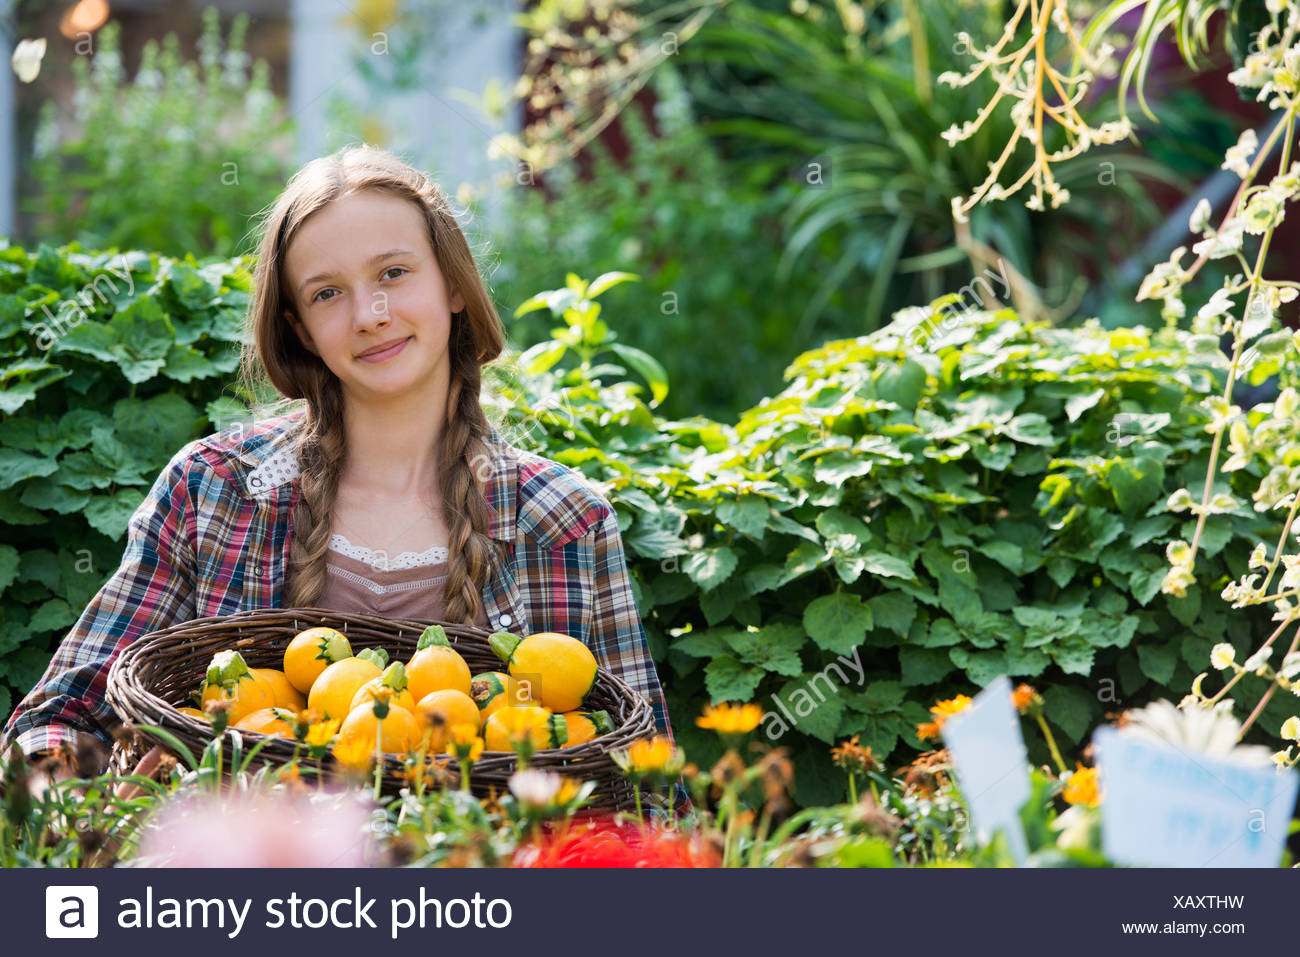 Summer on an organic farm. A girl holding a basket of fresh squash vegetables. - Stock Image